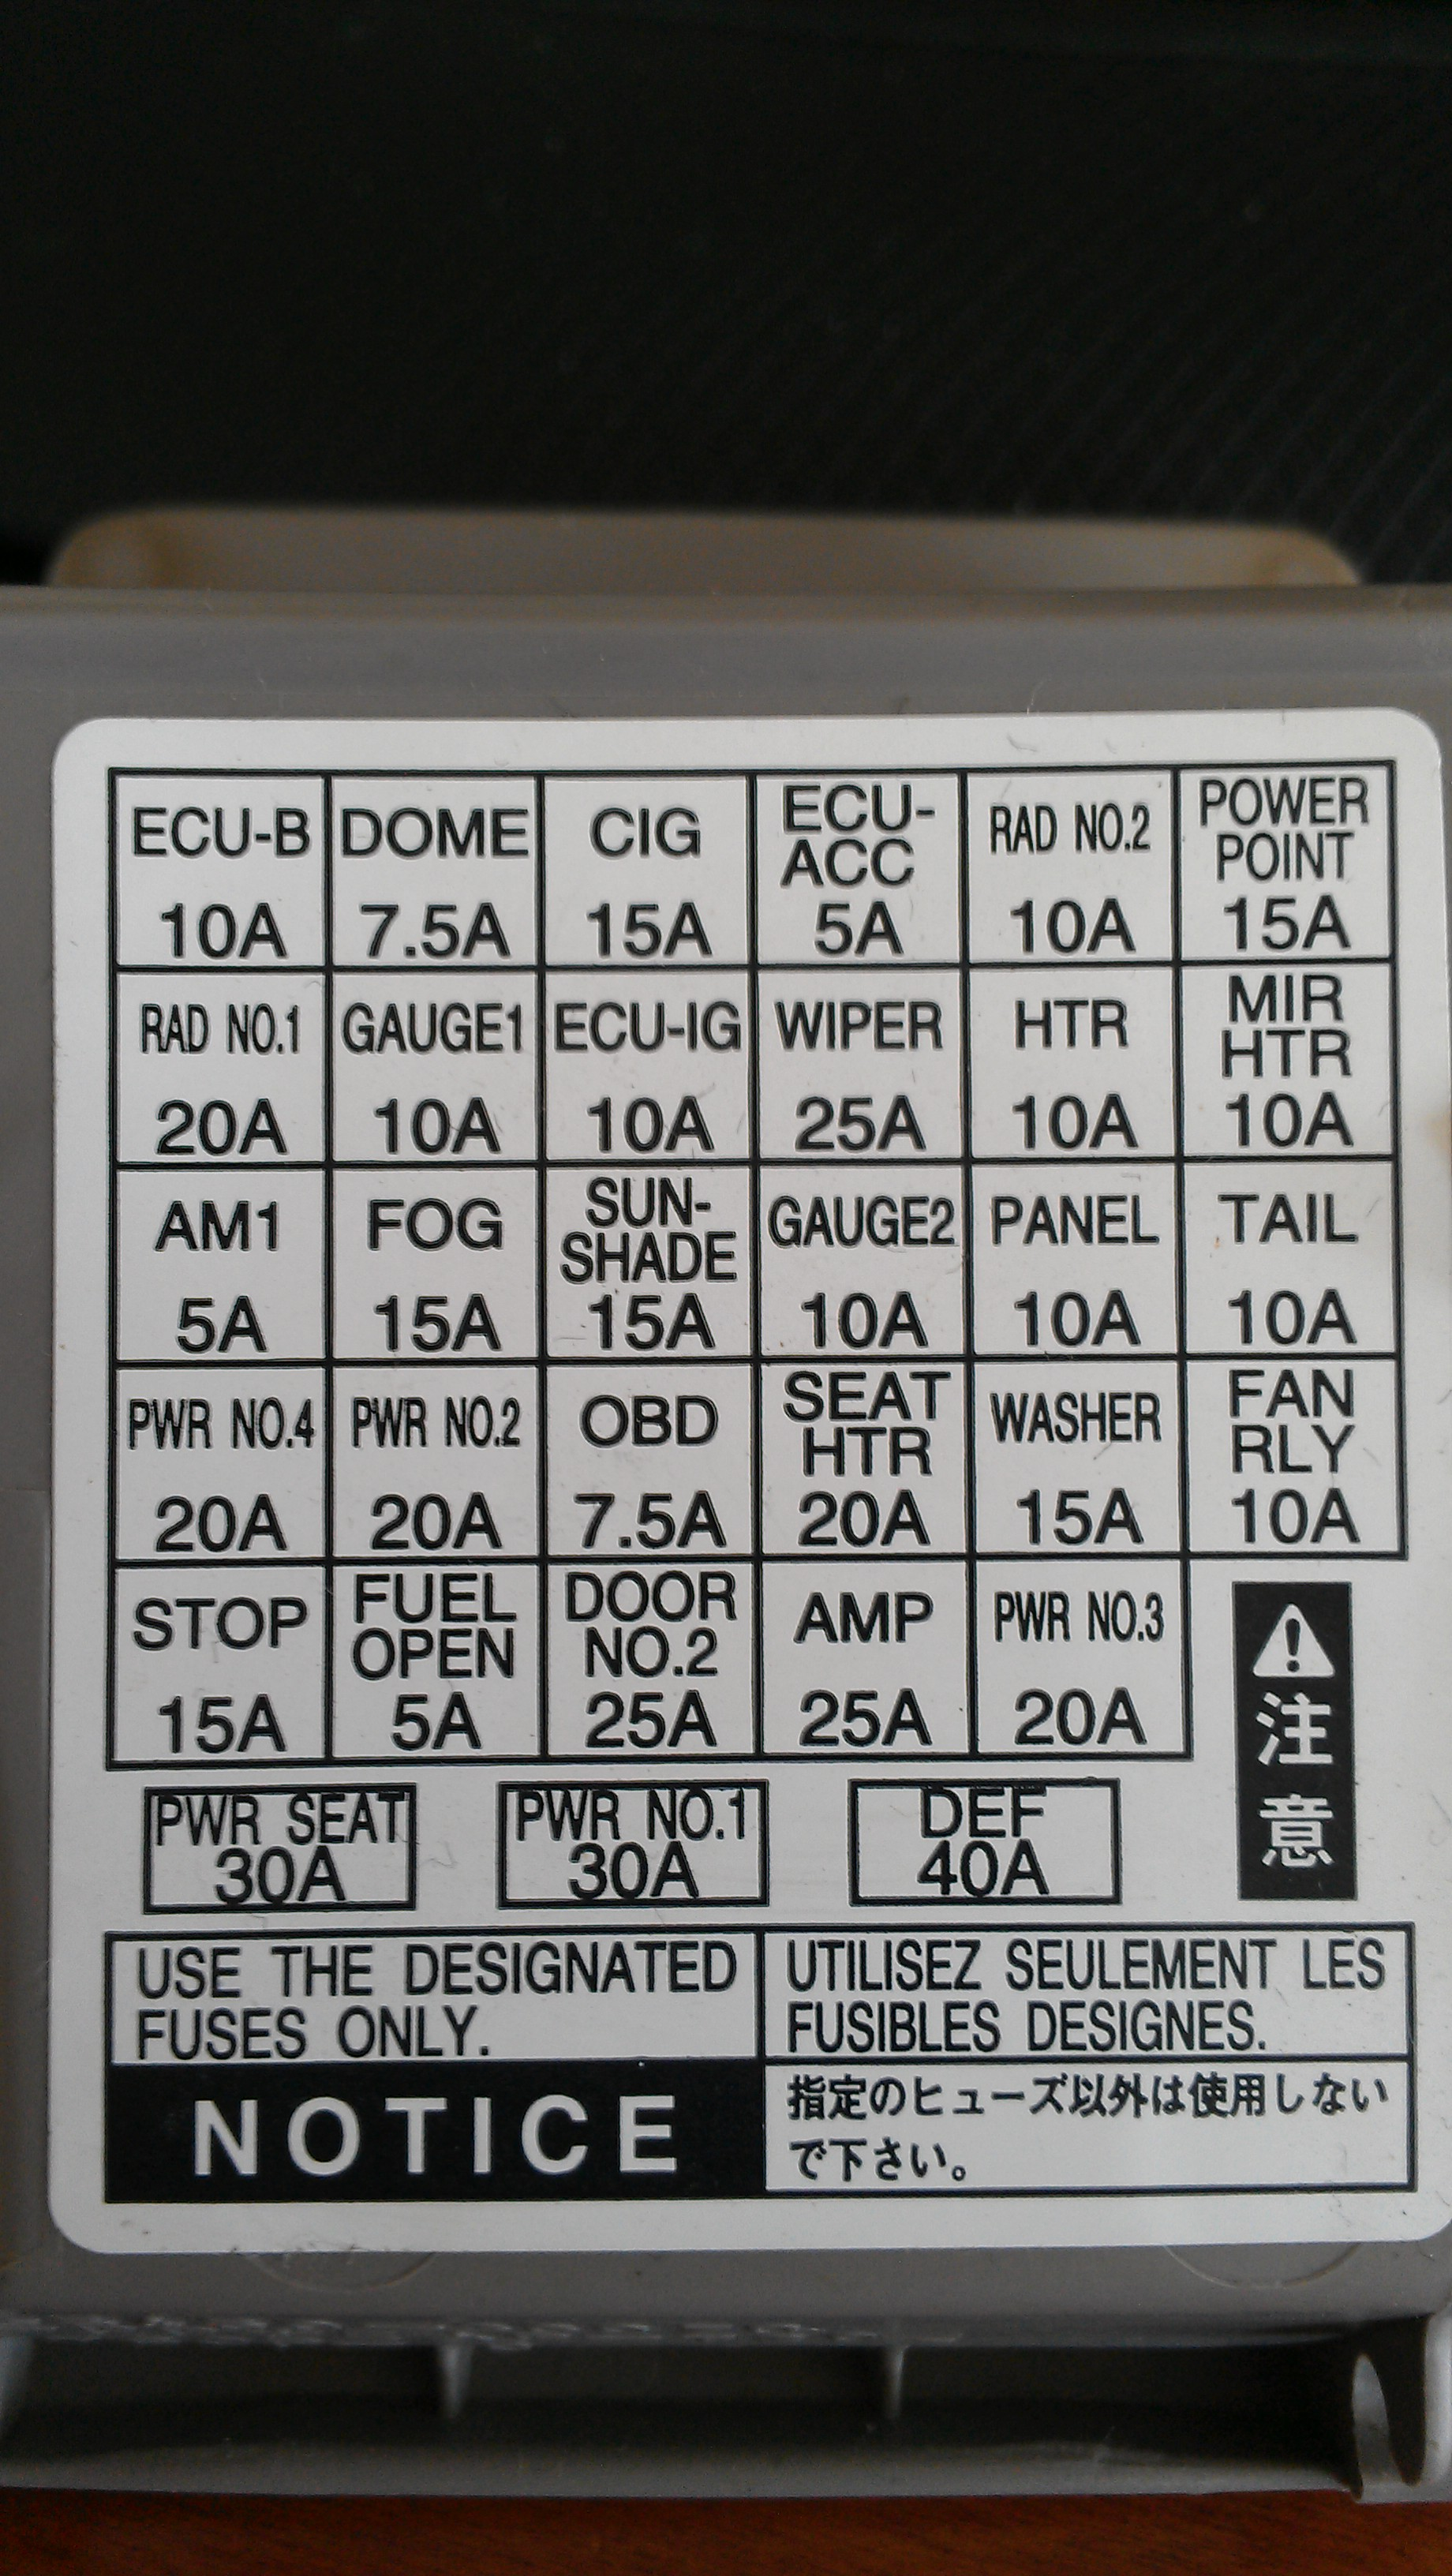 2004 Lexus Fuse Box Diagrams Circuit Diagram Schema Rx300 Radio Wiring Es330 Schematics Sterling